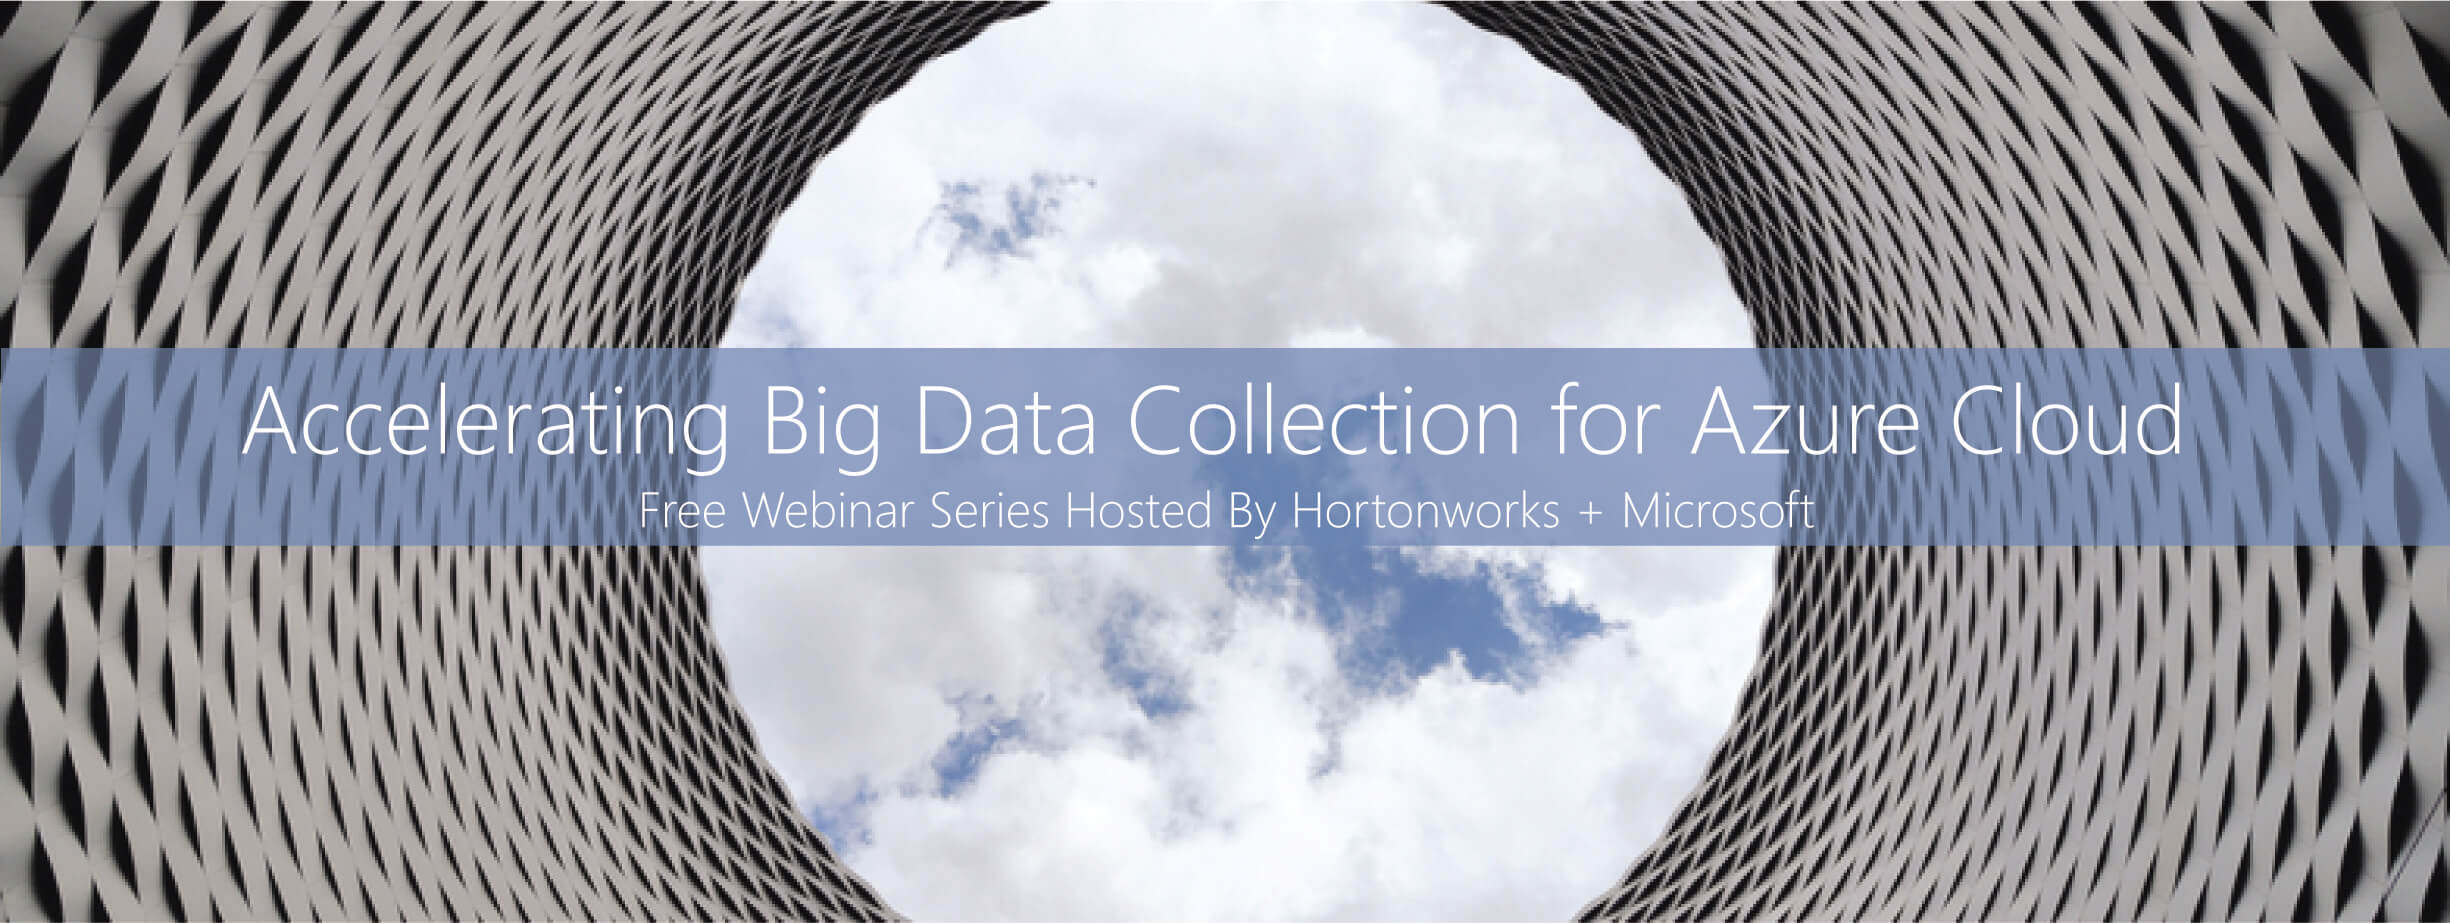 Free Webinar Event from Hortonworks and Microsoft - Accelerating Big Data Collection for Azure Cloud